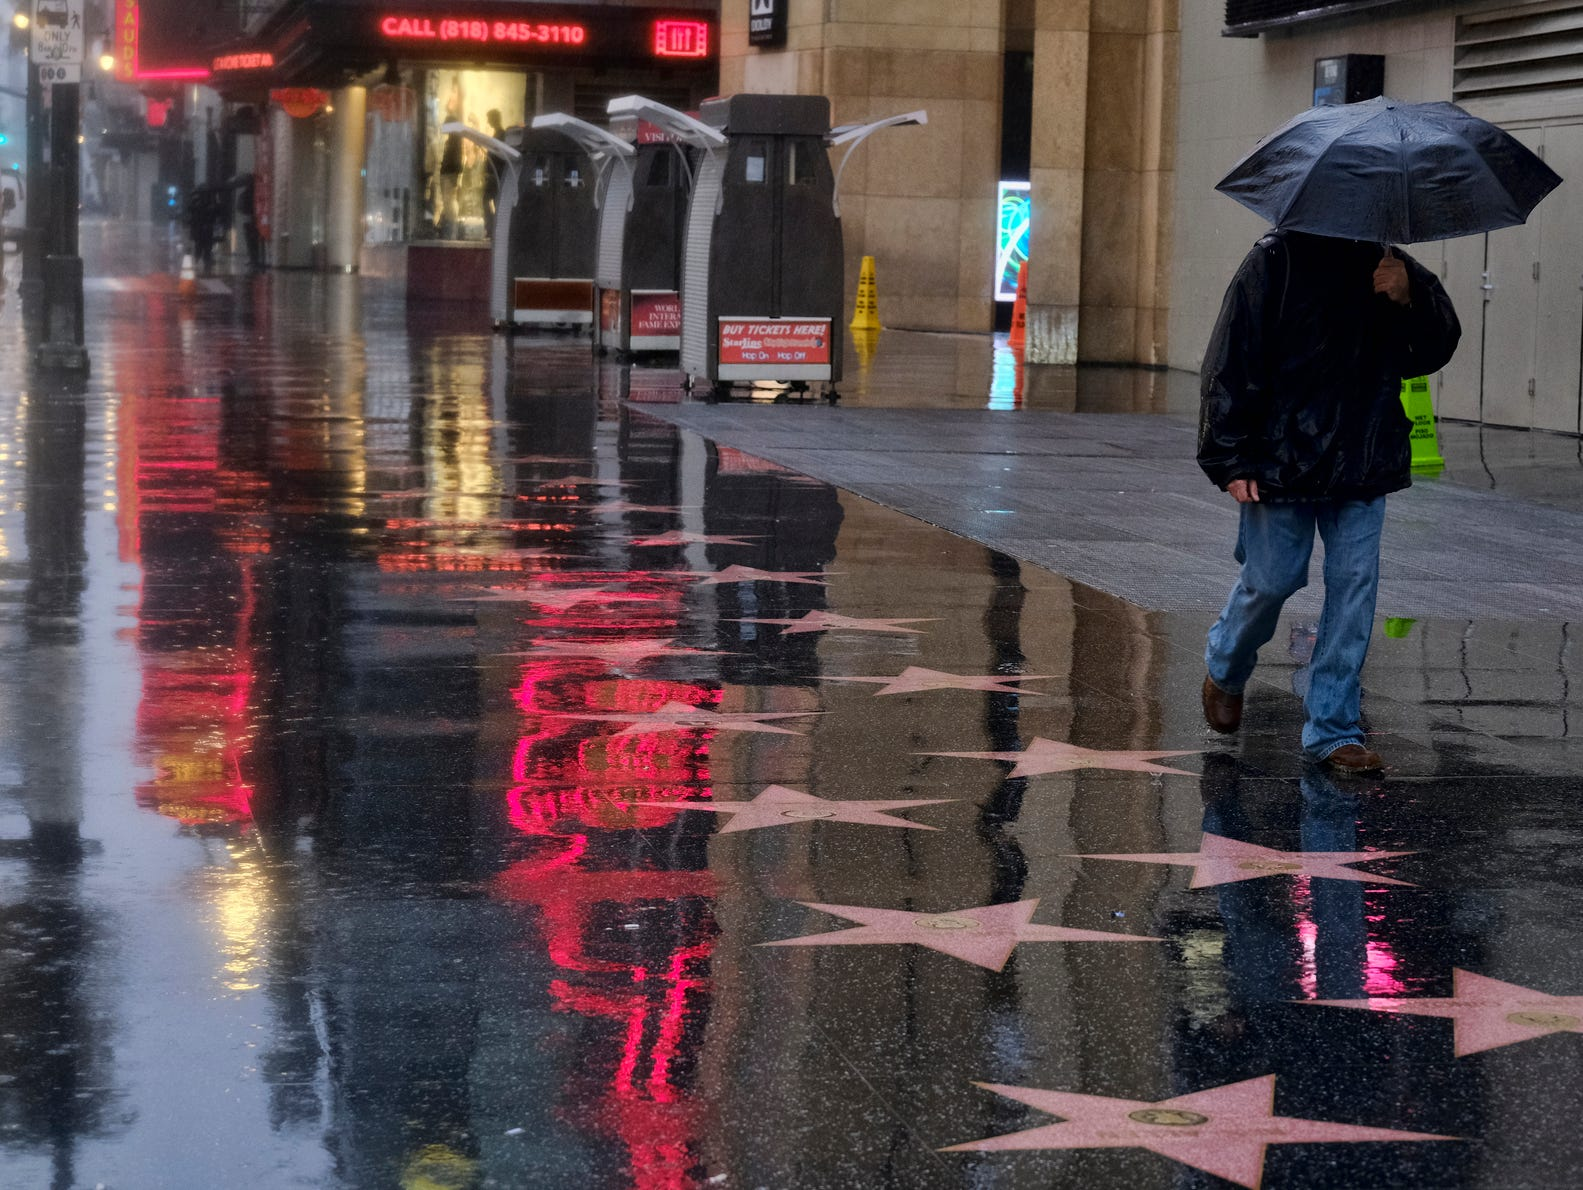 A pedestrians makes his way along a rain soaked Hollywood Blvd. in Los Angeles on Thursday, Jan. 17, 2019. The latest in a series of Pacific Ocean storms pounded California with rain and snow Thursday, prompting officials to put communities on alert for mudslides and flooding and making travel treacherous.